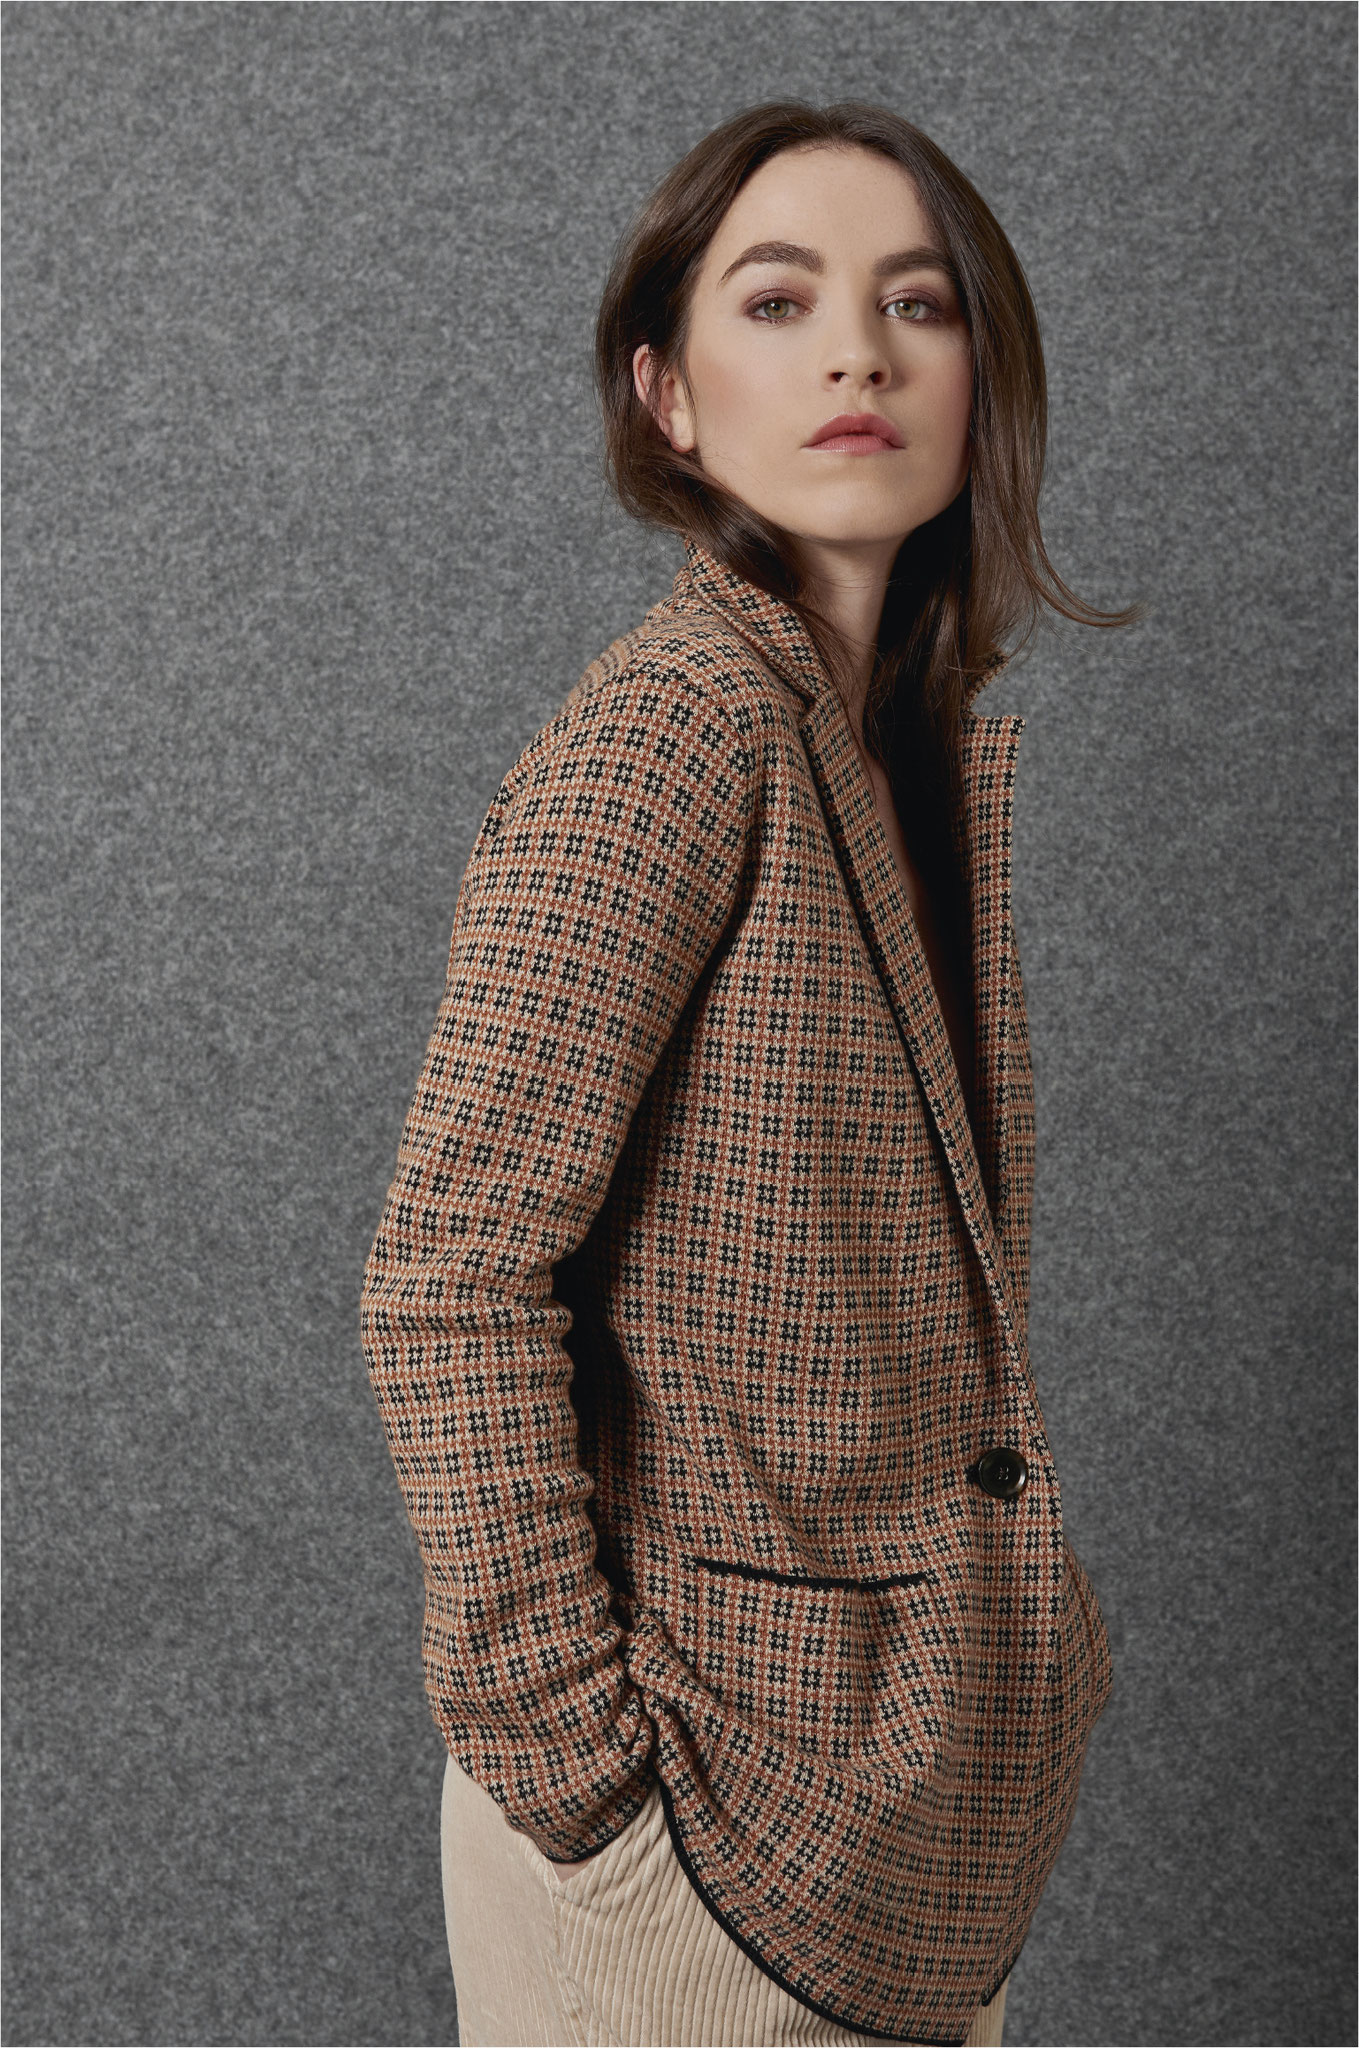 ESISTO - Cashmere - Collection H/W 2020 - Blazer/Jacke